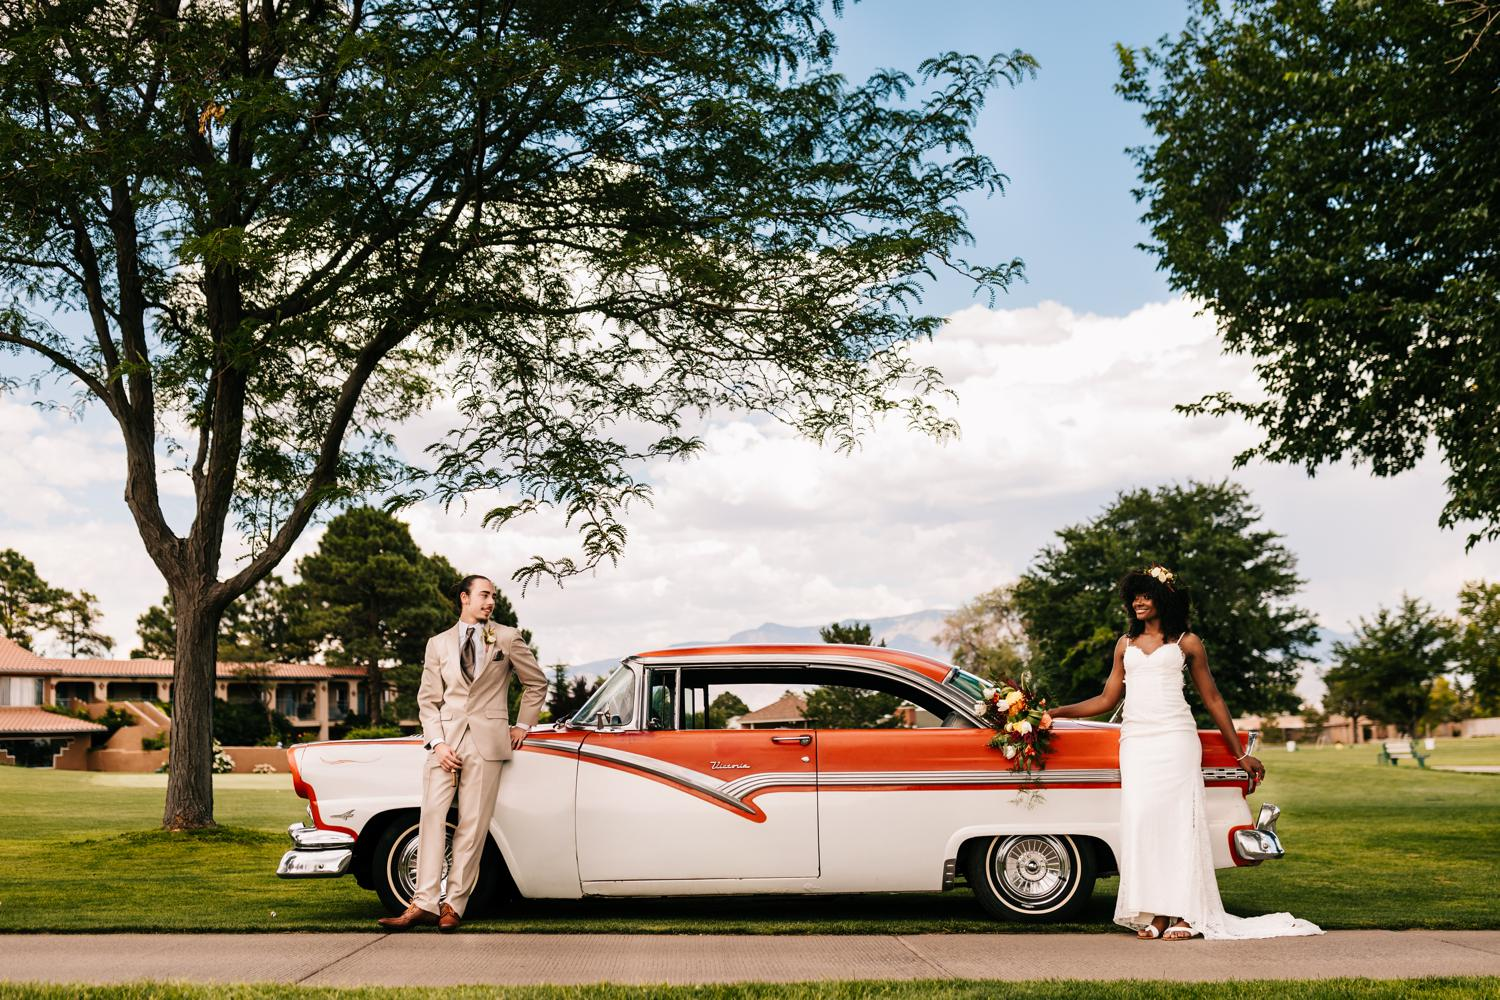 Bride and groom with vintage red car in Albuquerque